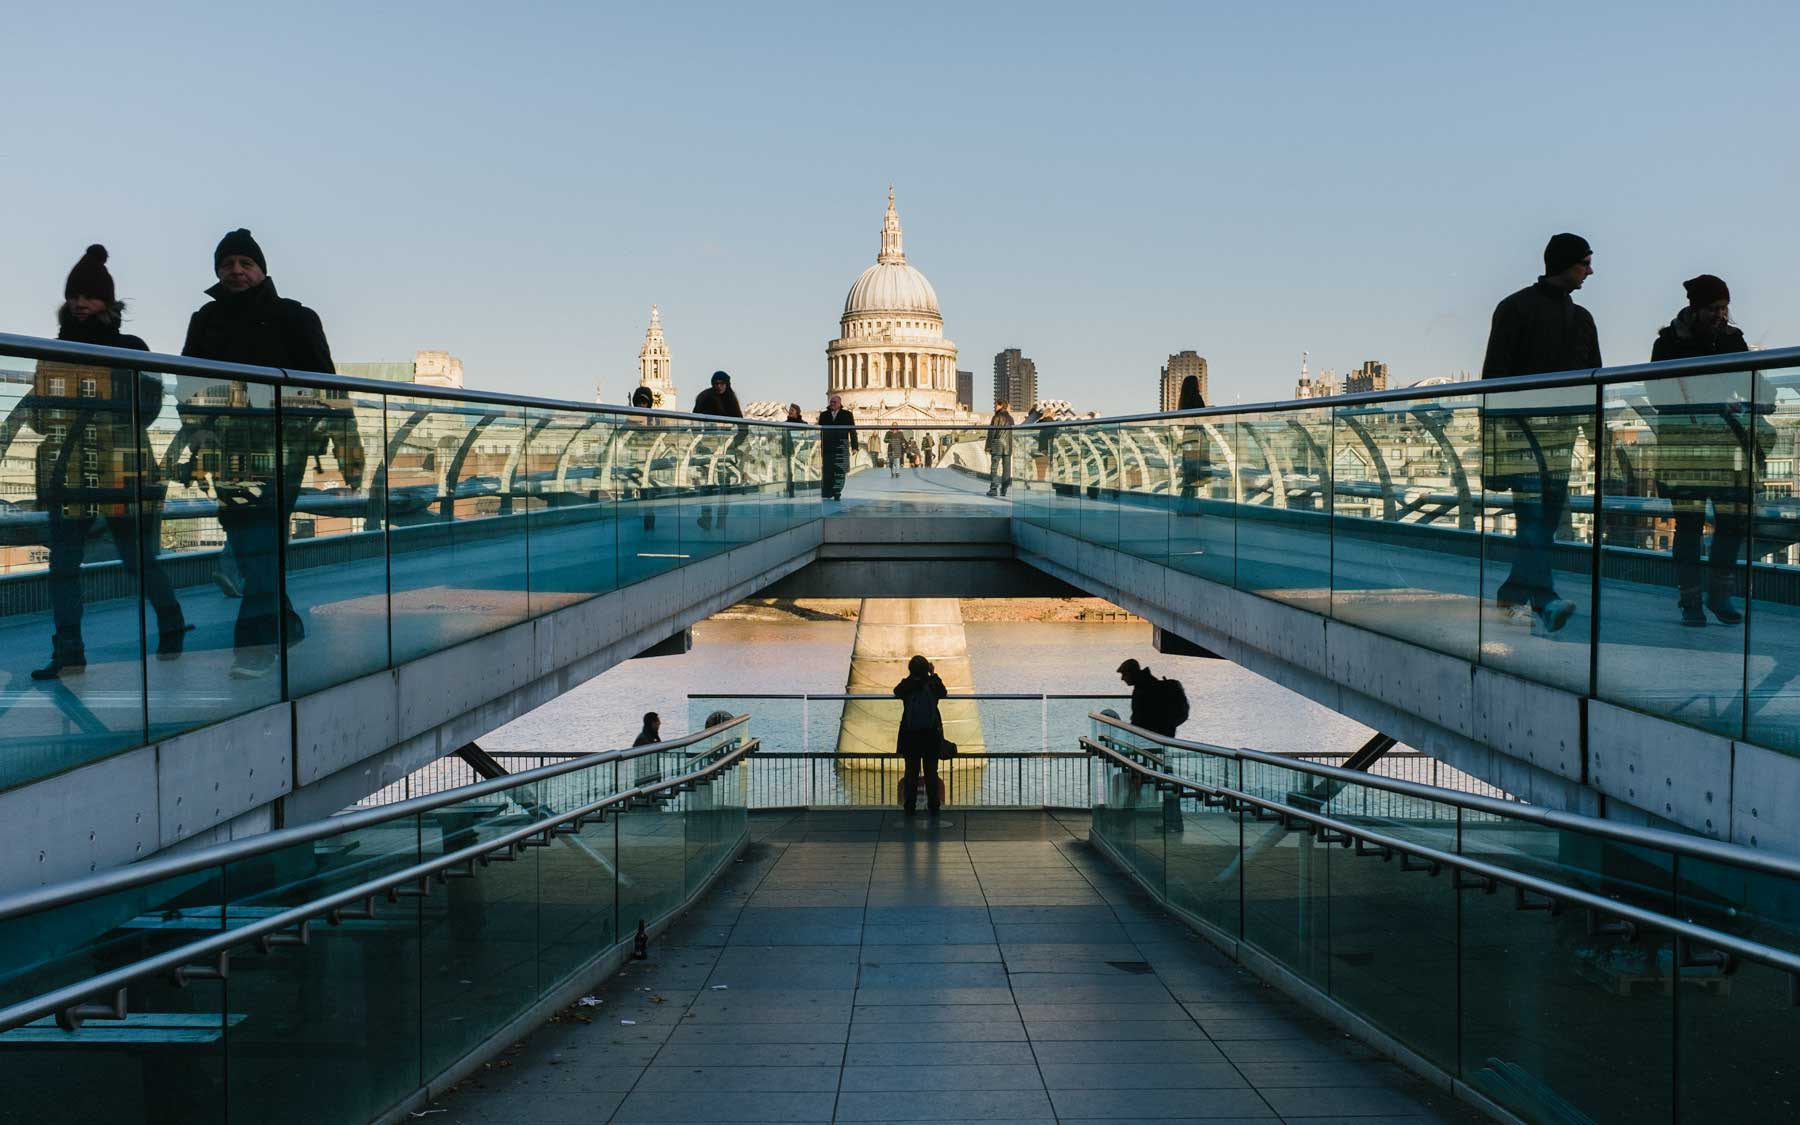 The Millennium Bridge spanning from the Tate Modern to St Paul's Catherdral.